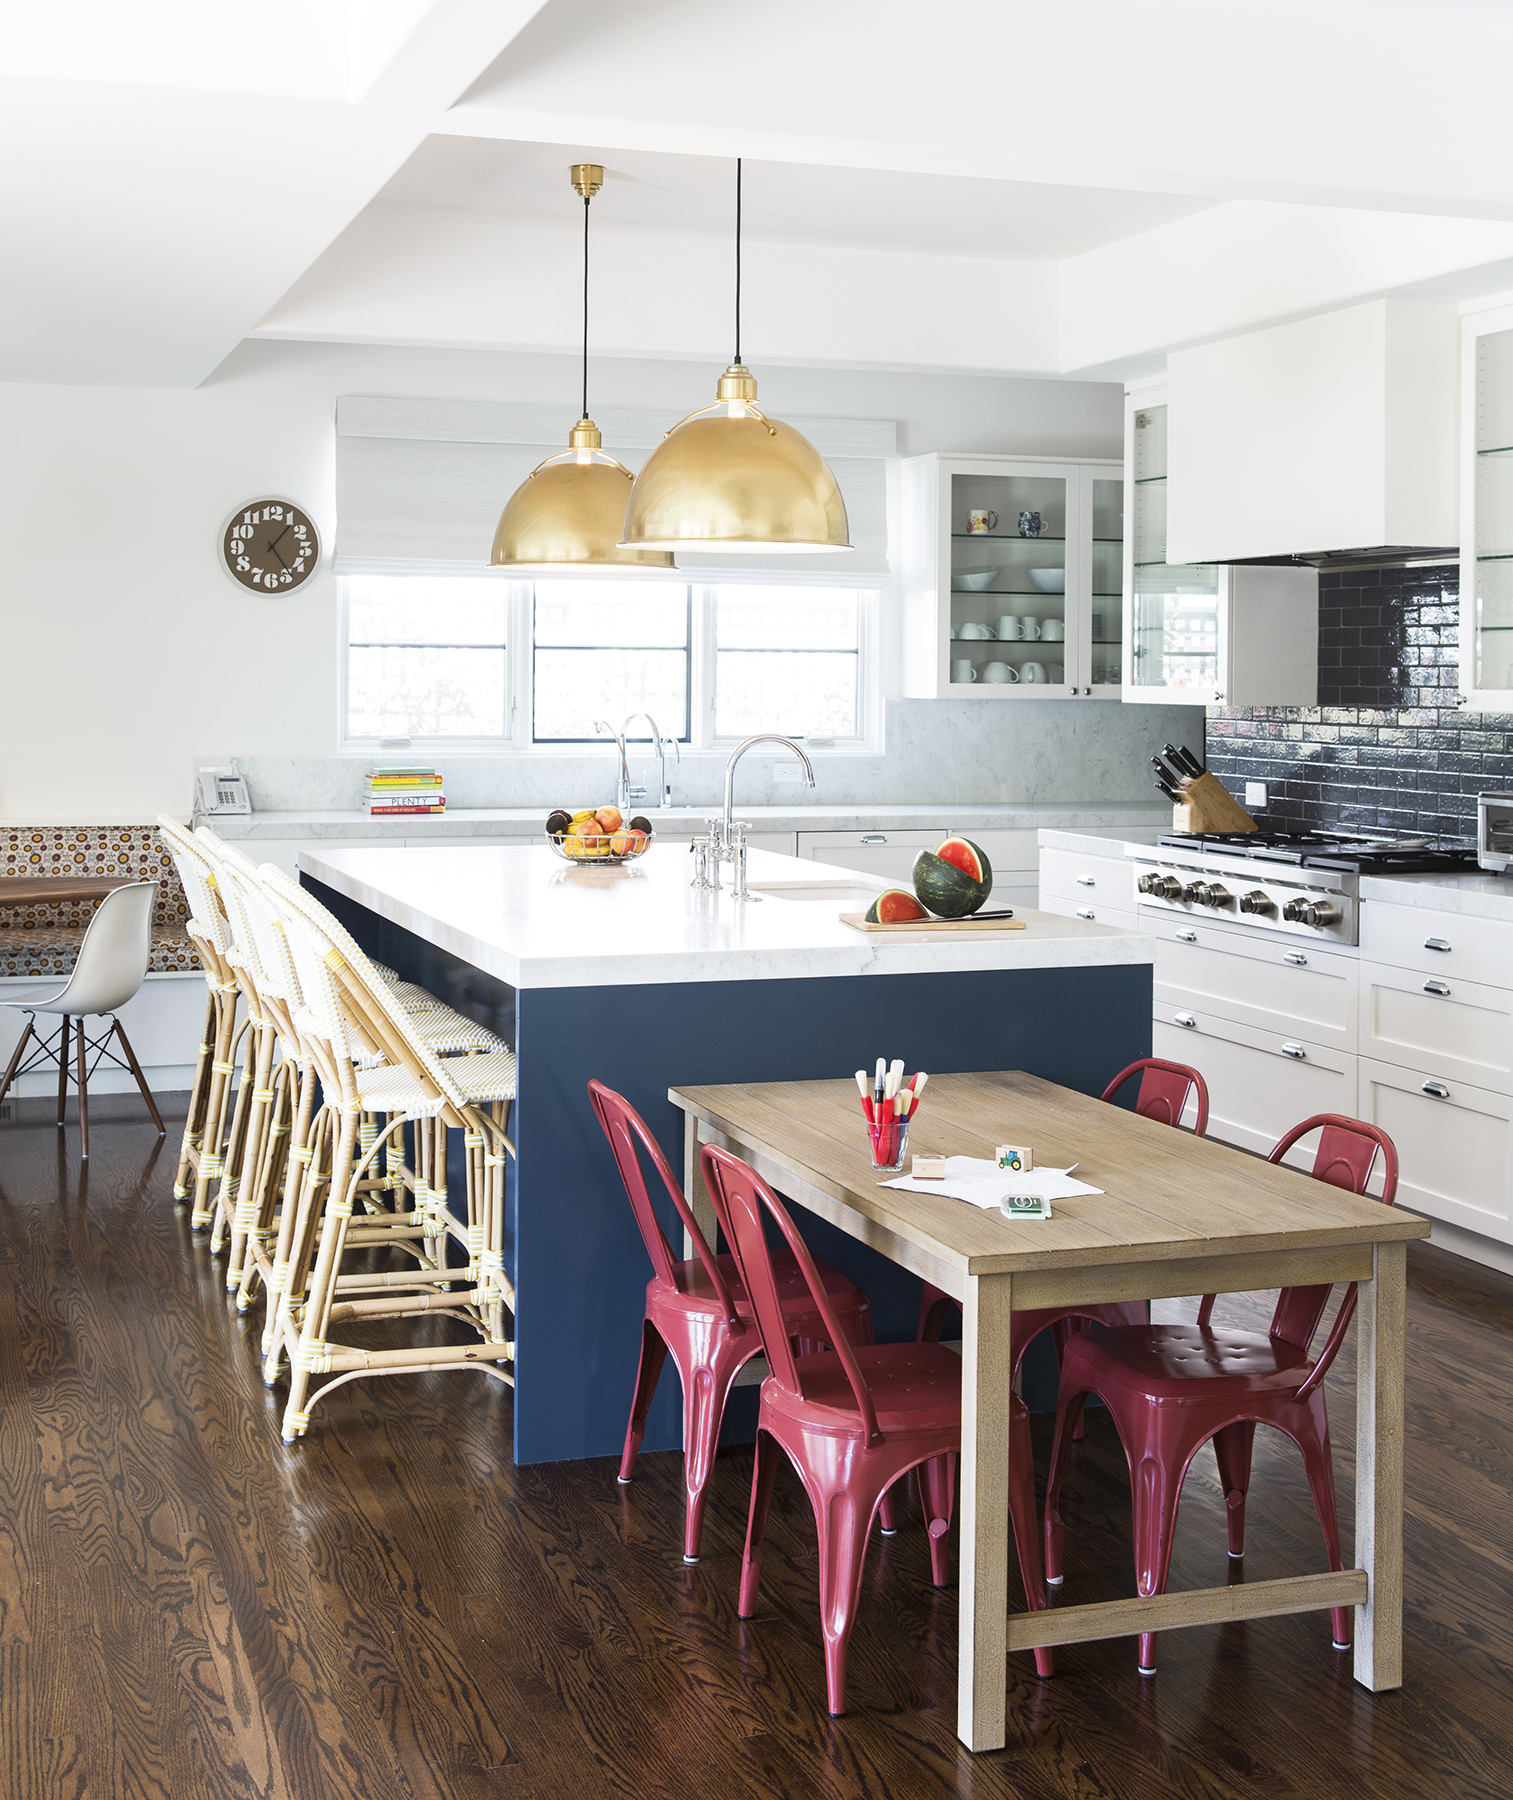 Top 12 Gorgeous Kitchen Island Ideas | Real Simple | Real Simple